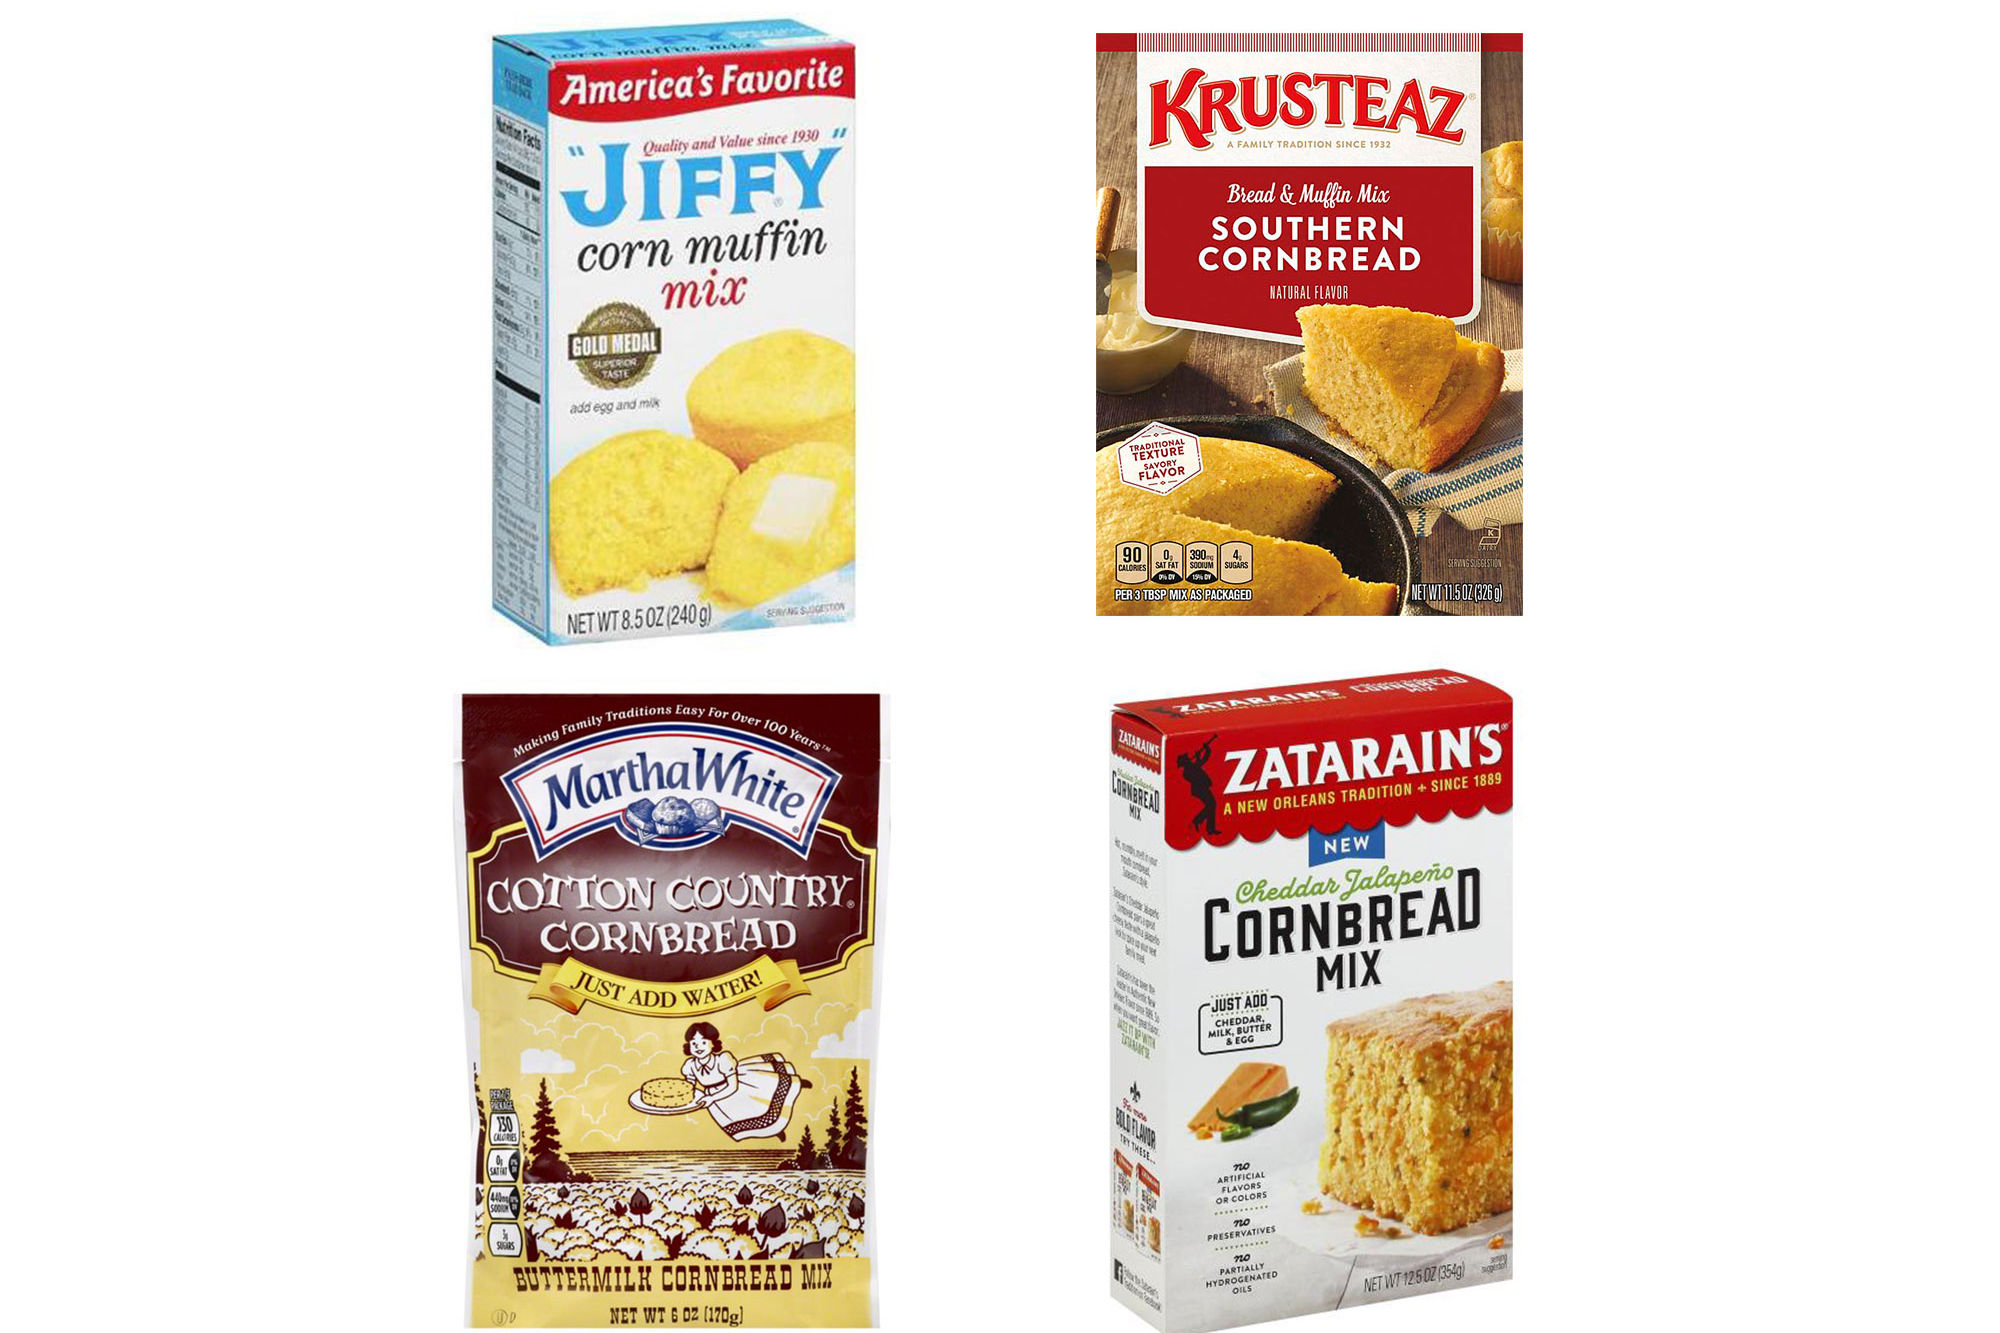 We Blind Taste-Tested 4 Boxed Cornbread Mixes, And This One Was The Winner By Far